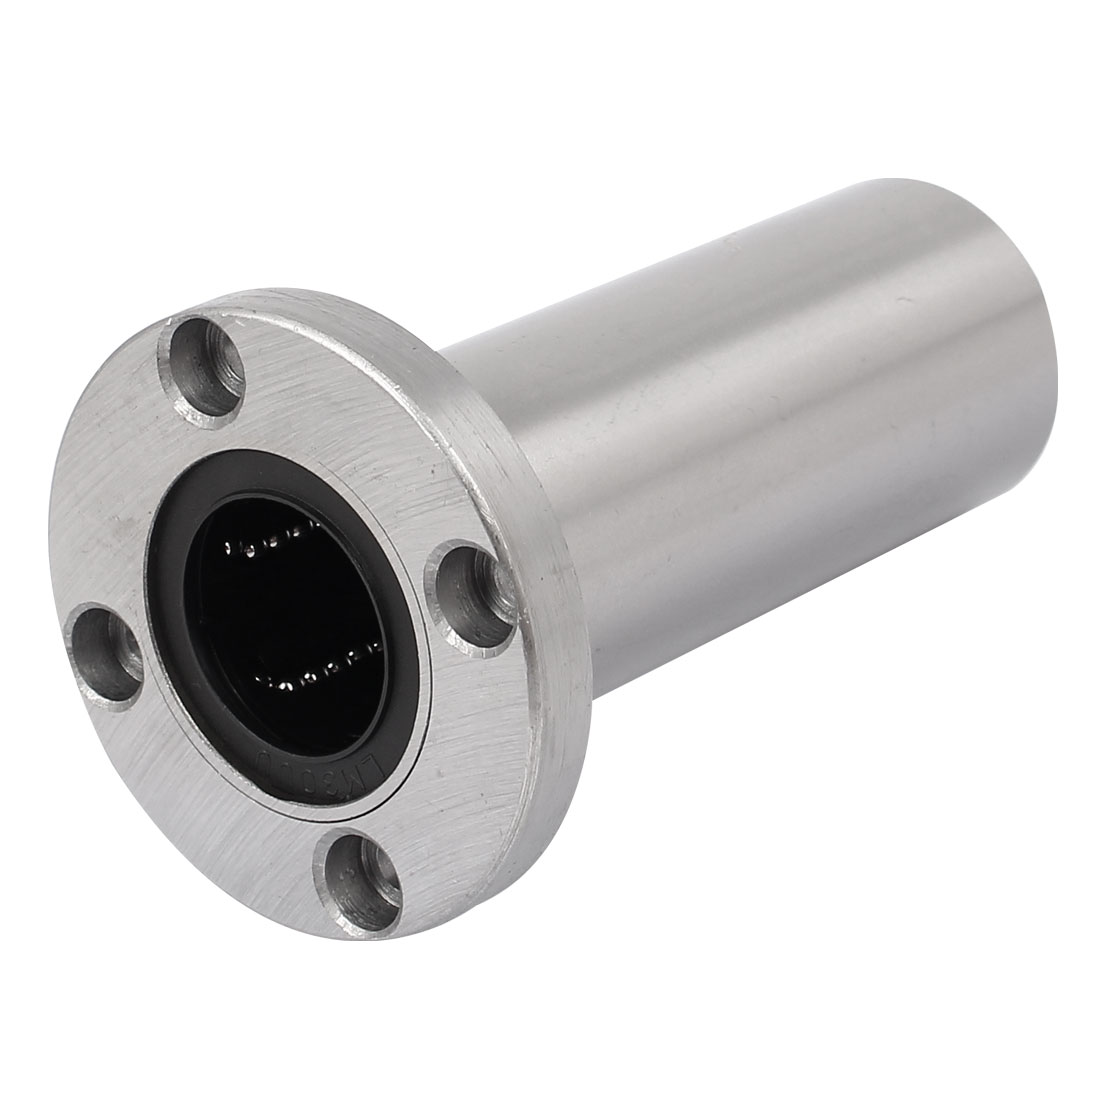 LMF30LUU 30mm Inner Dia Round Flange Type Linear Motion Ball Shaft Bearing